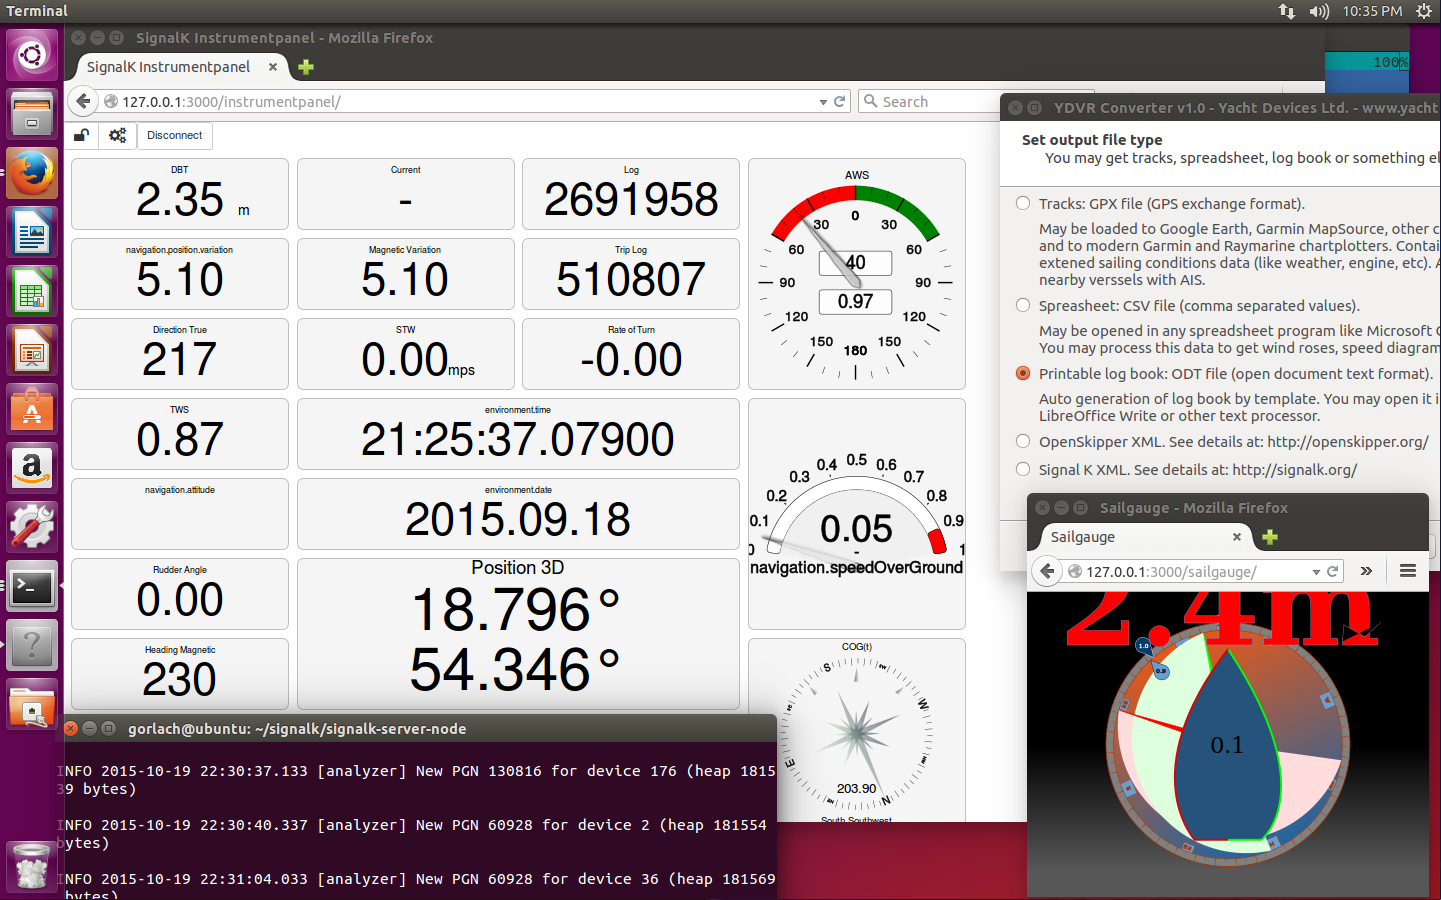 Screenshot of YDVR data in Signal K web applets, click to enlarge